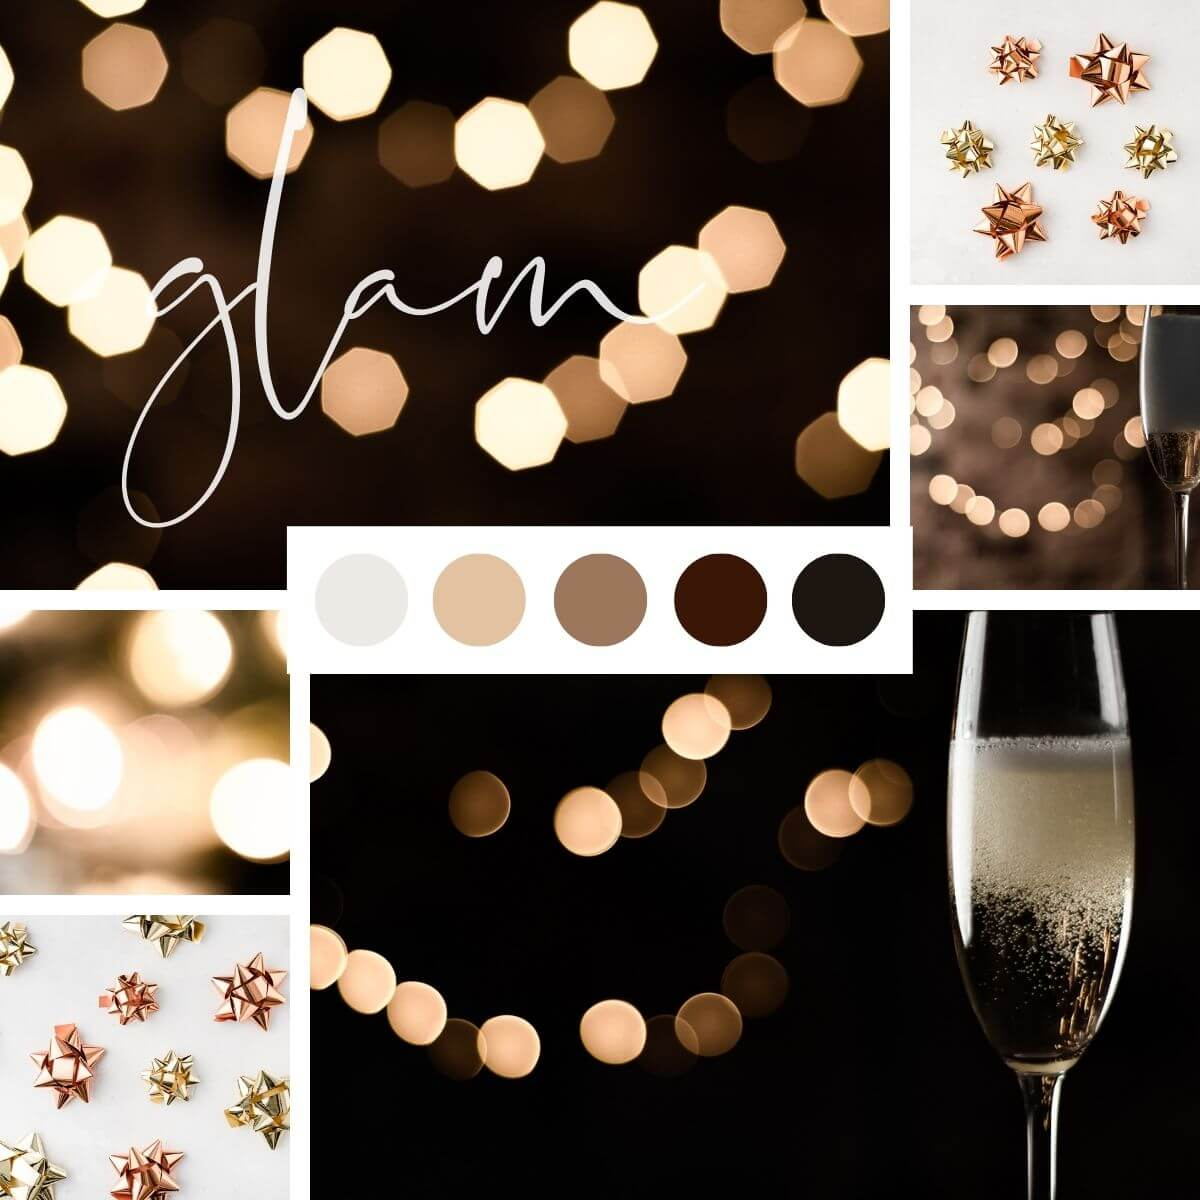 Glam stock images